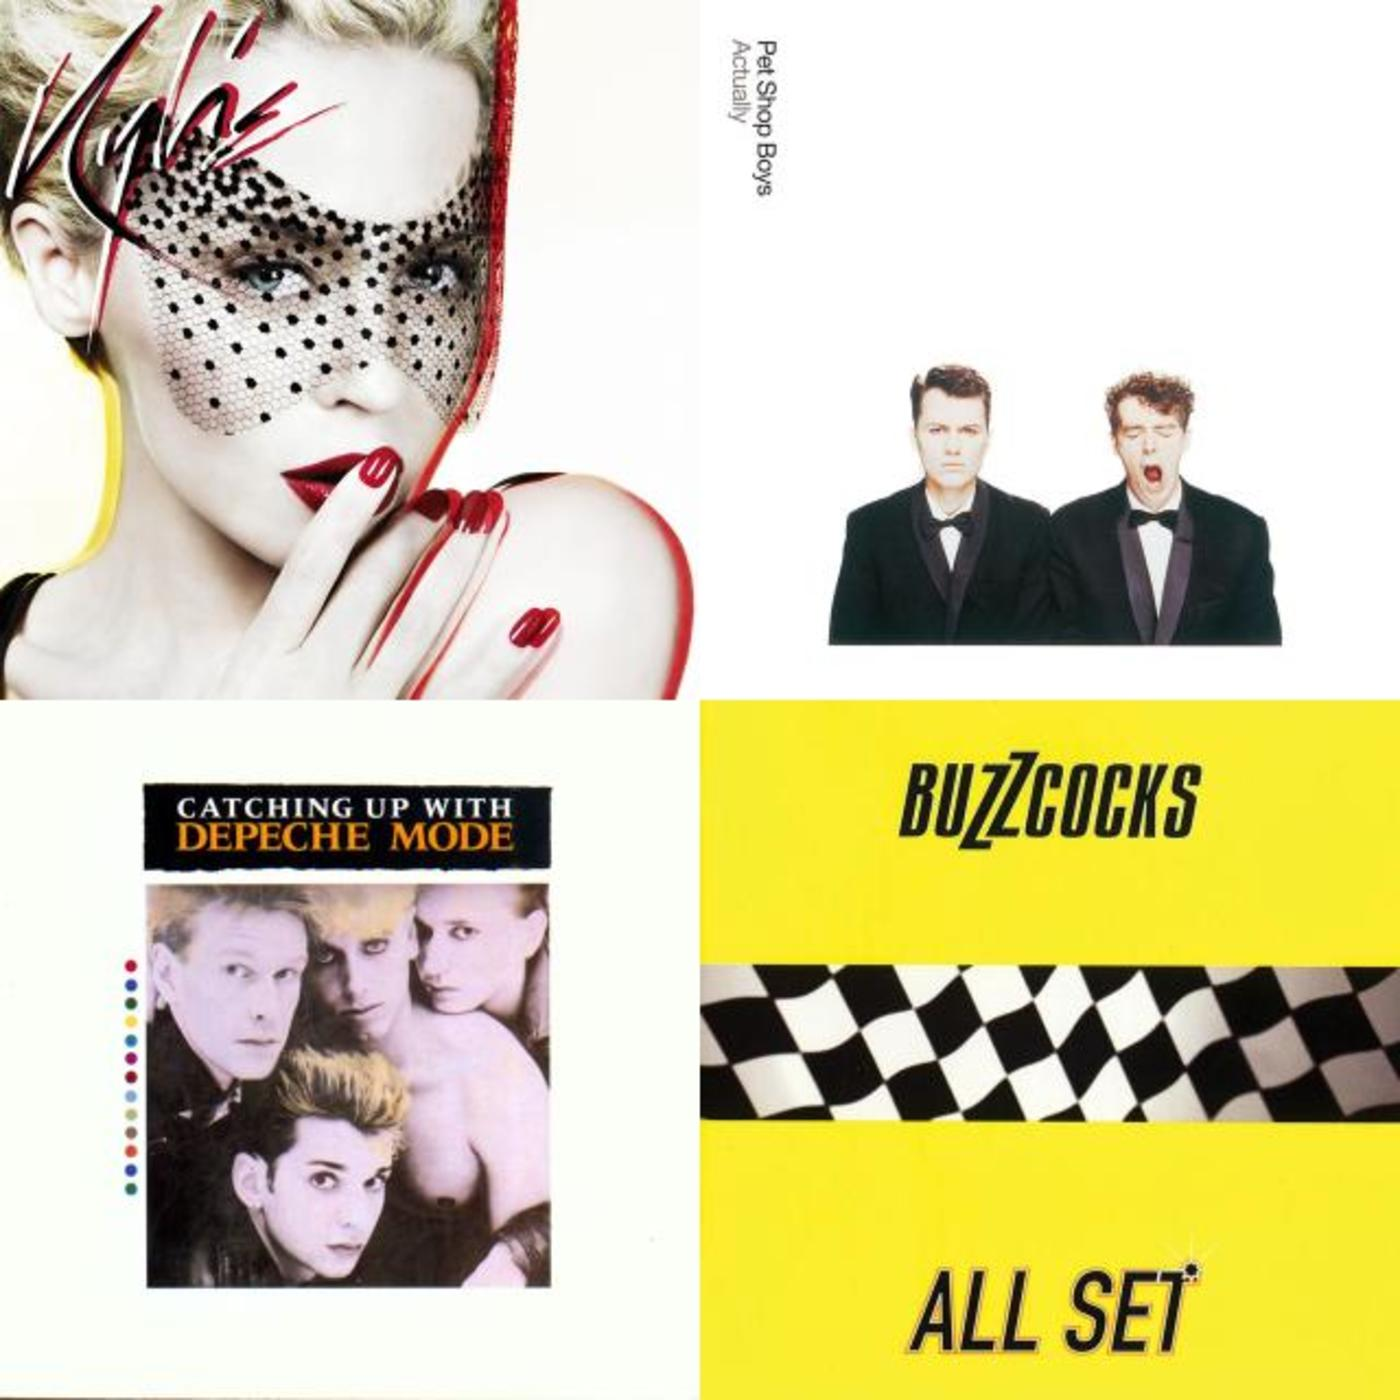 Rhino Love Song: Totally From The Heart - Buzzcocks, Pet Shop Boys, Kylie Minogue, Depeche Mode, The Swinging Blue Jeans, The Replacements, Paul Westerberg, David Bowie